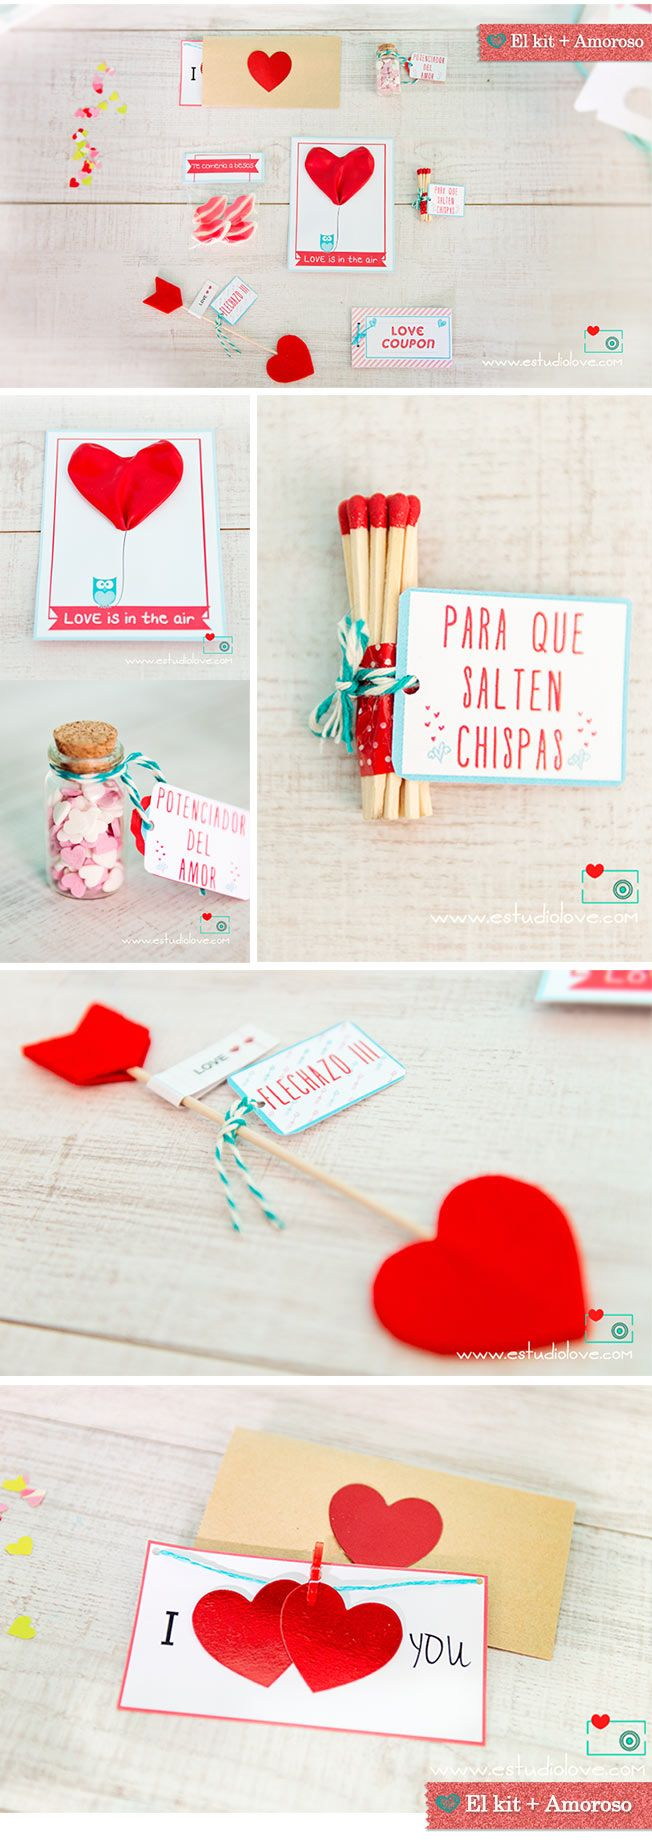 17 best ideas about creative box on pinterest box box - San valentin regalos ...